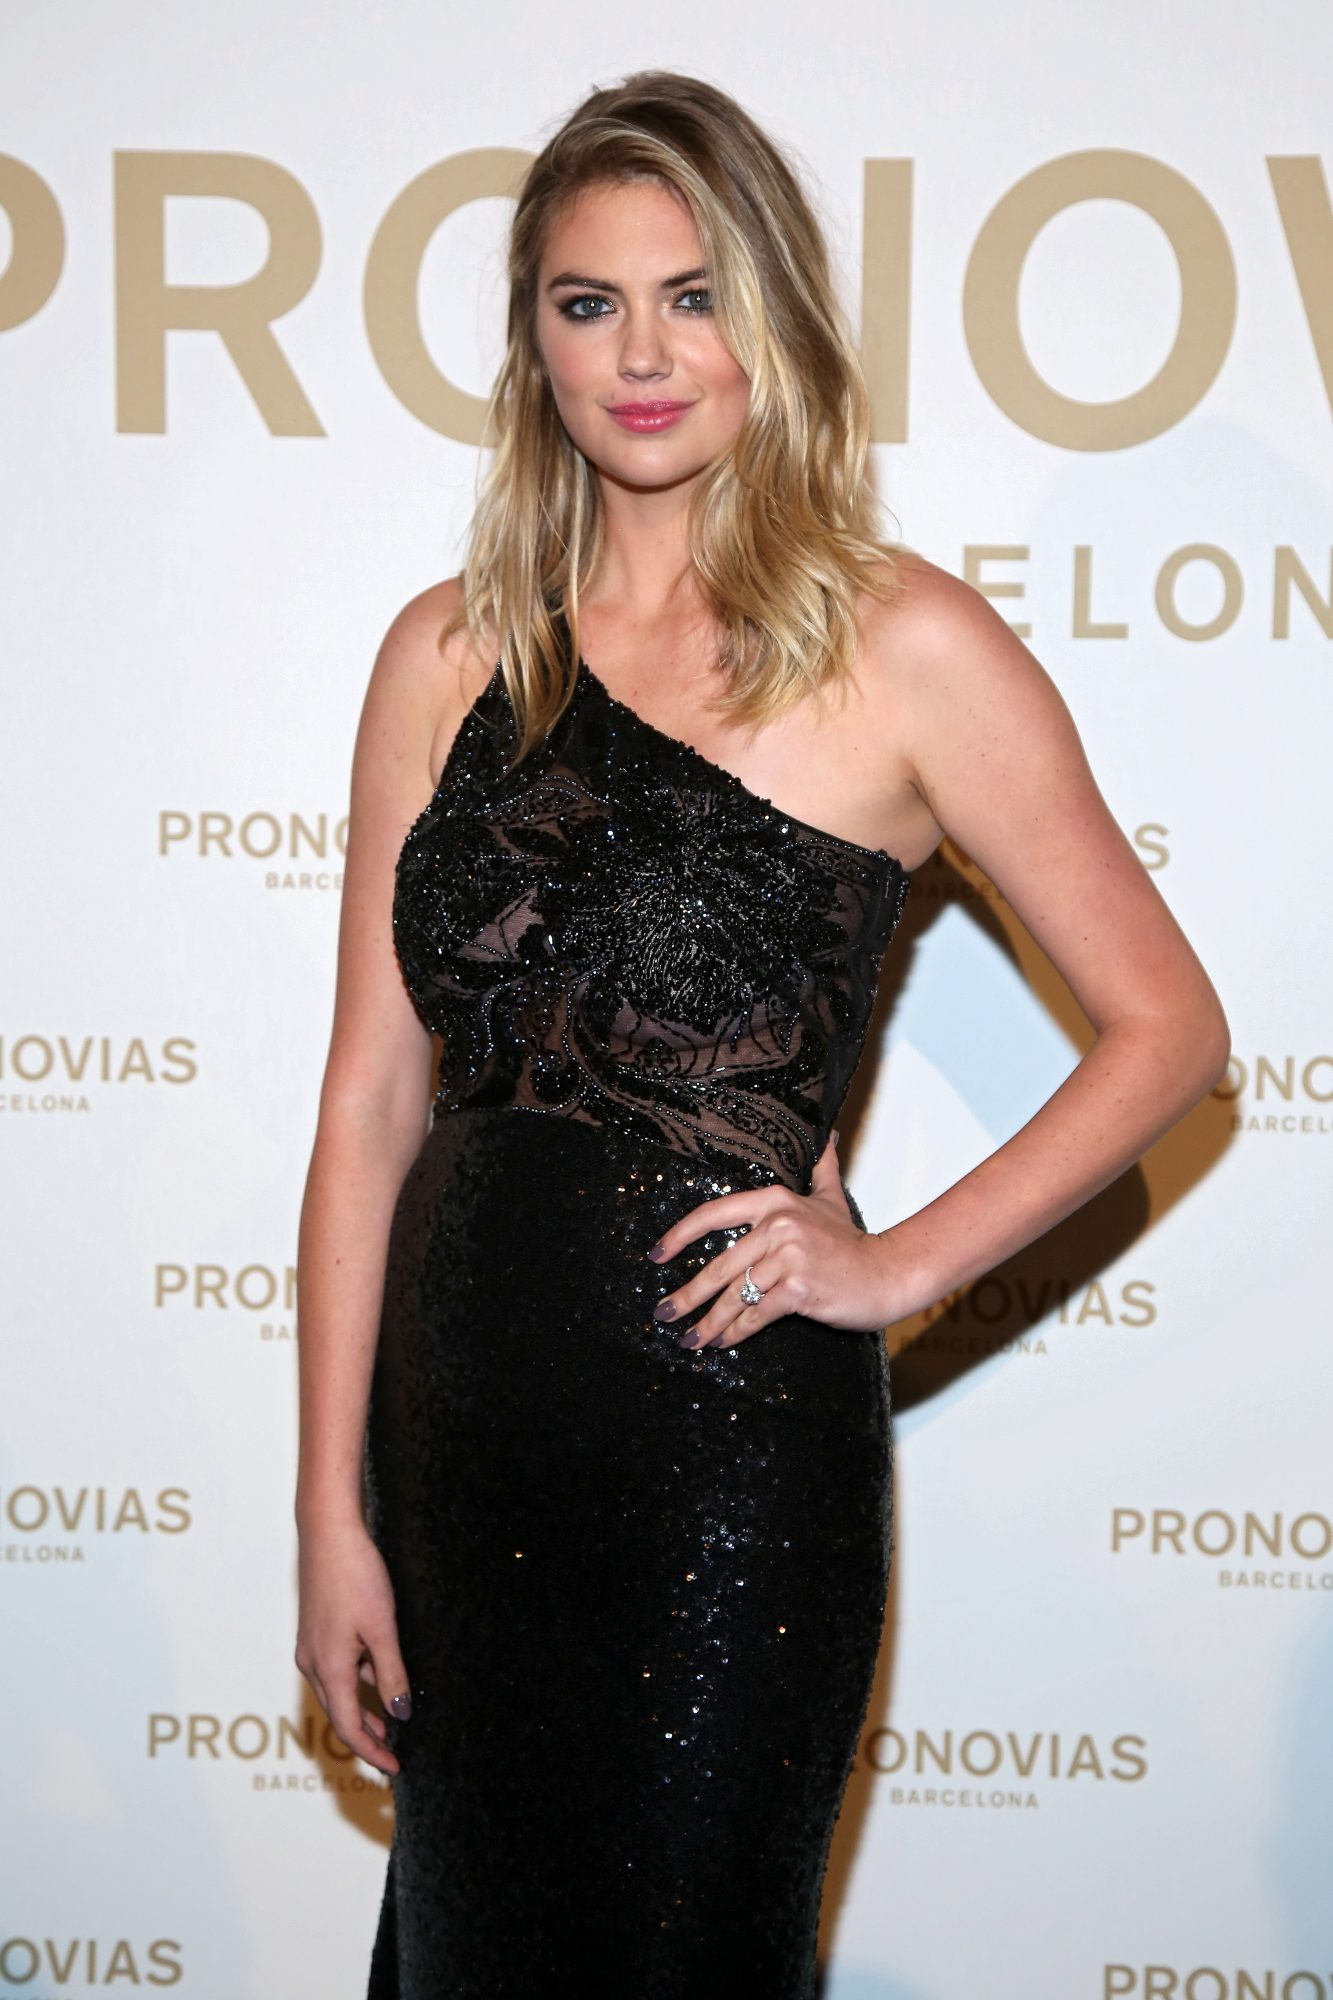 Kate Upton at Pronovias Spring 2018 Show Talks Wedding Planning